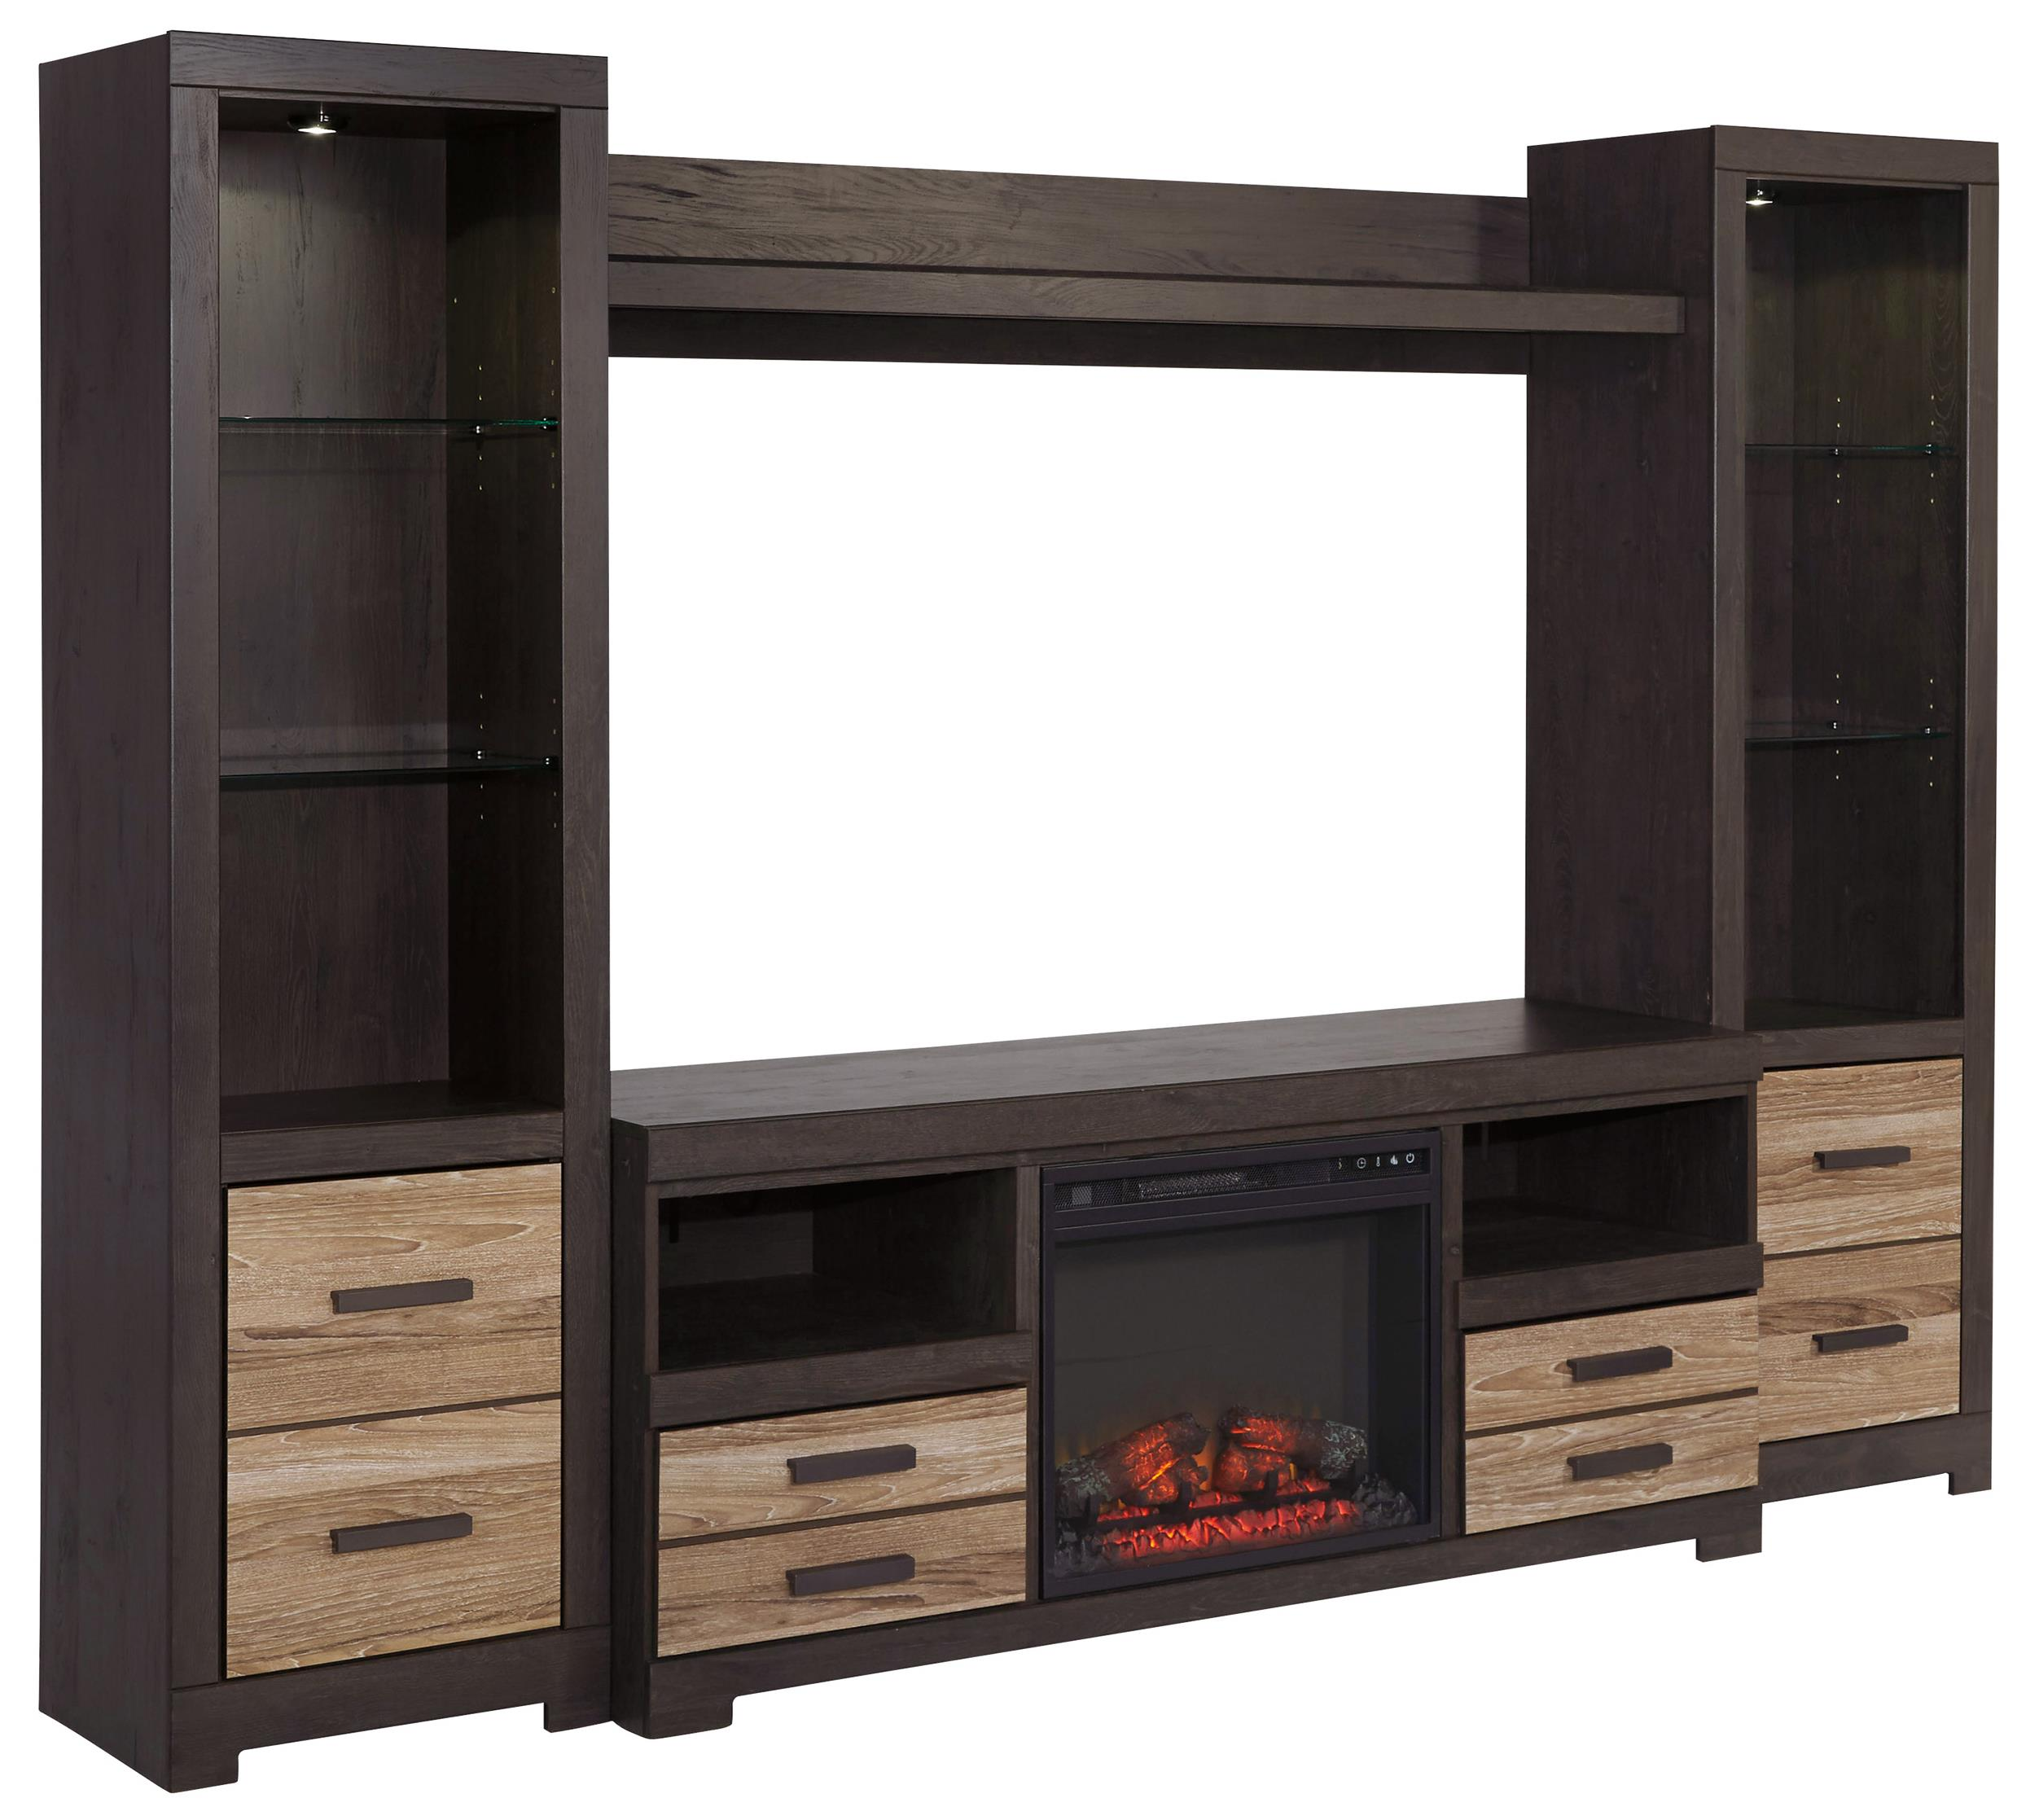 Signature Design by Ashley Harlinton TV Stand with